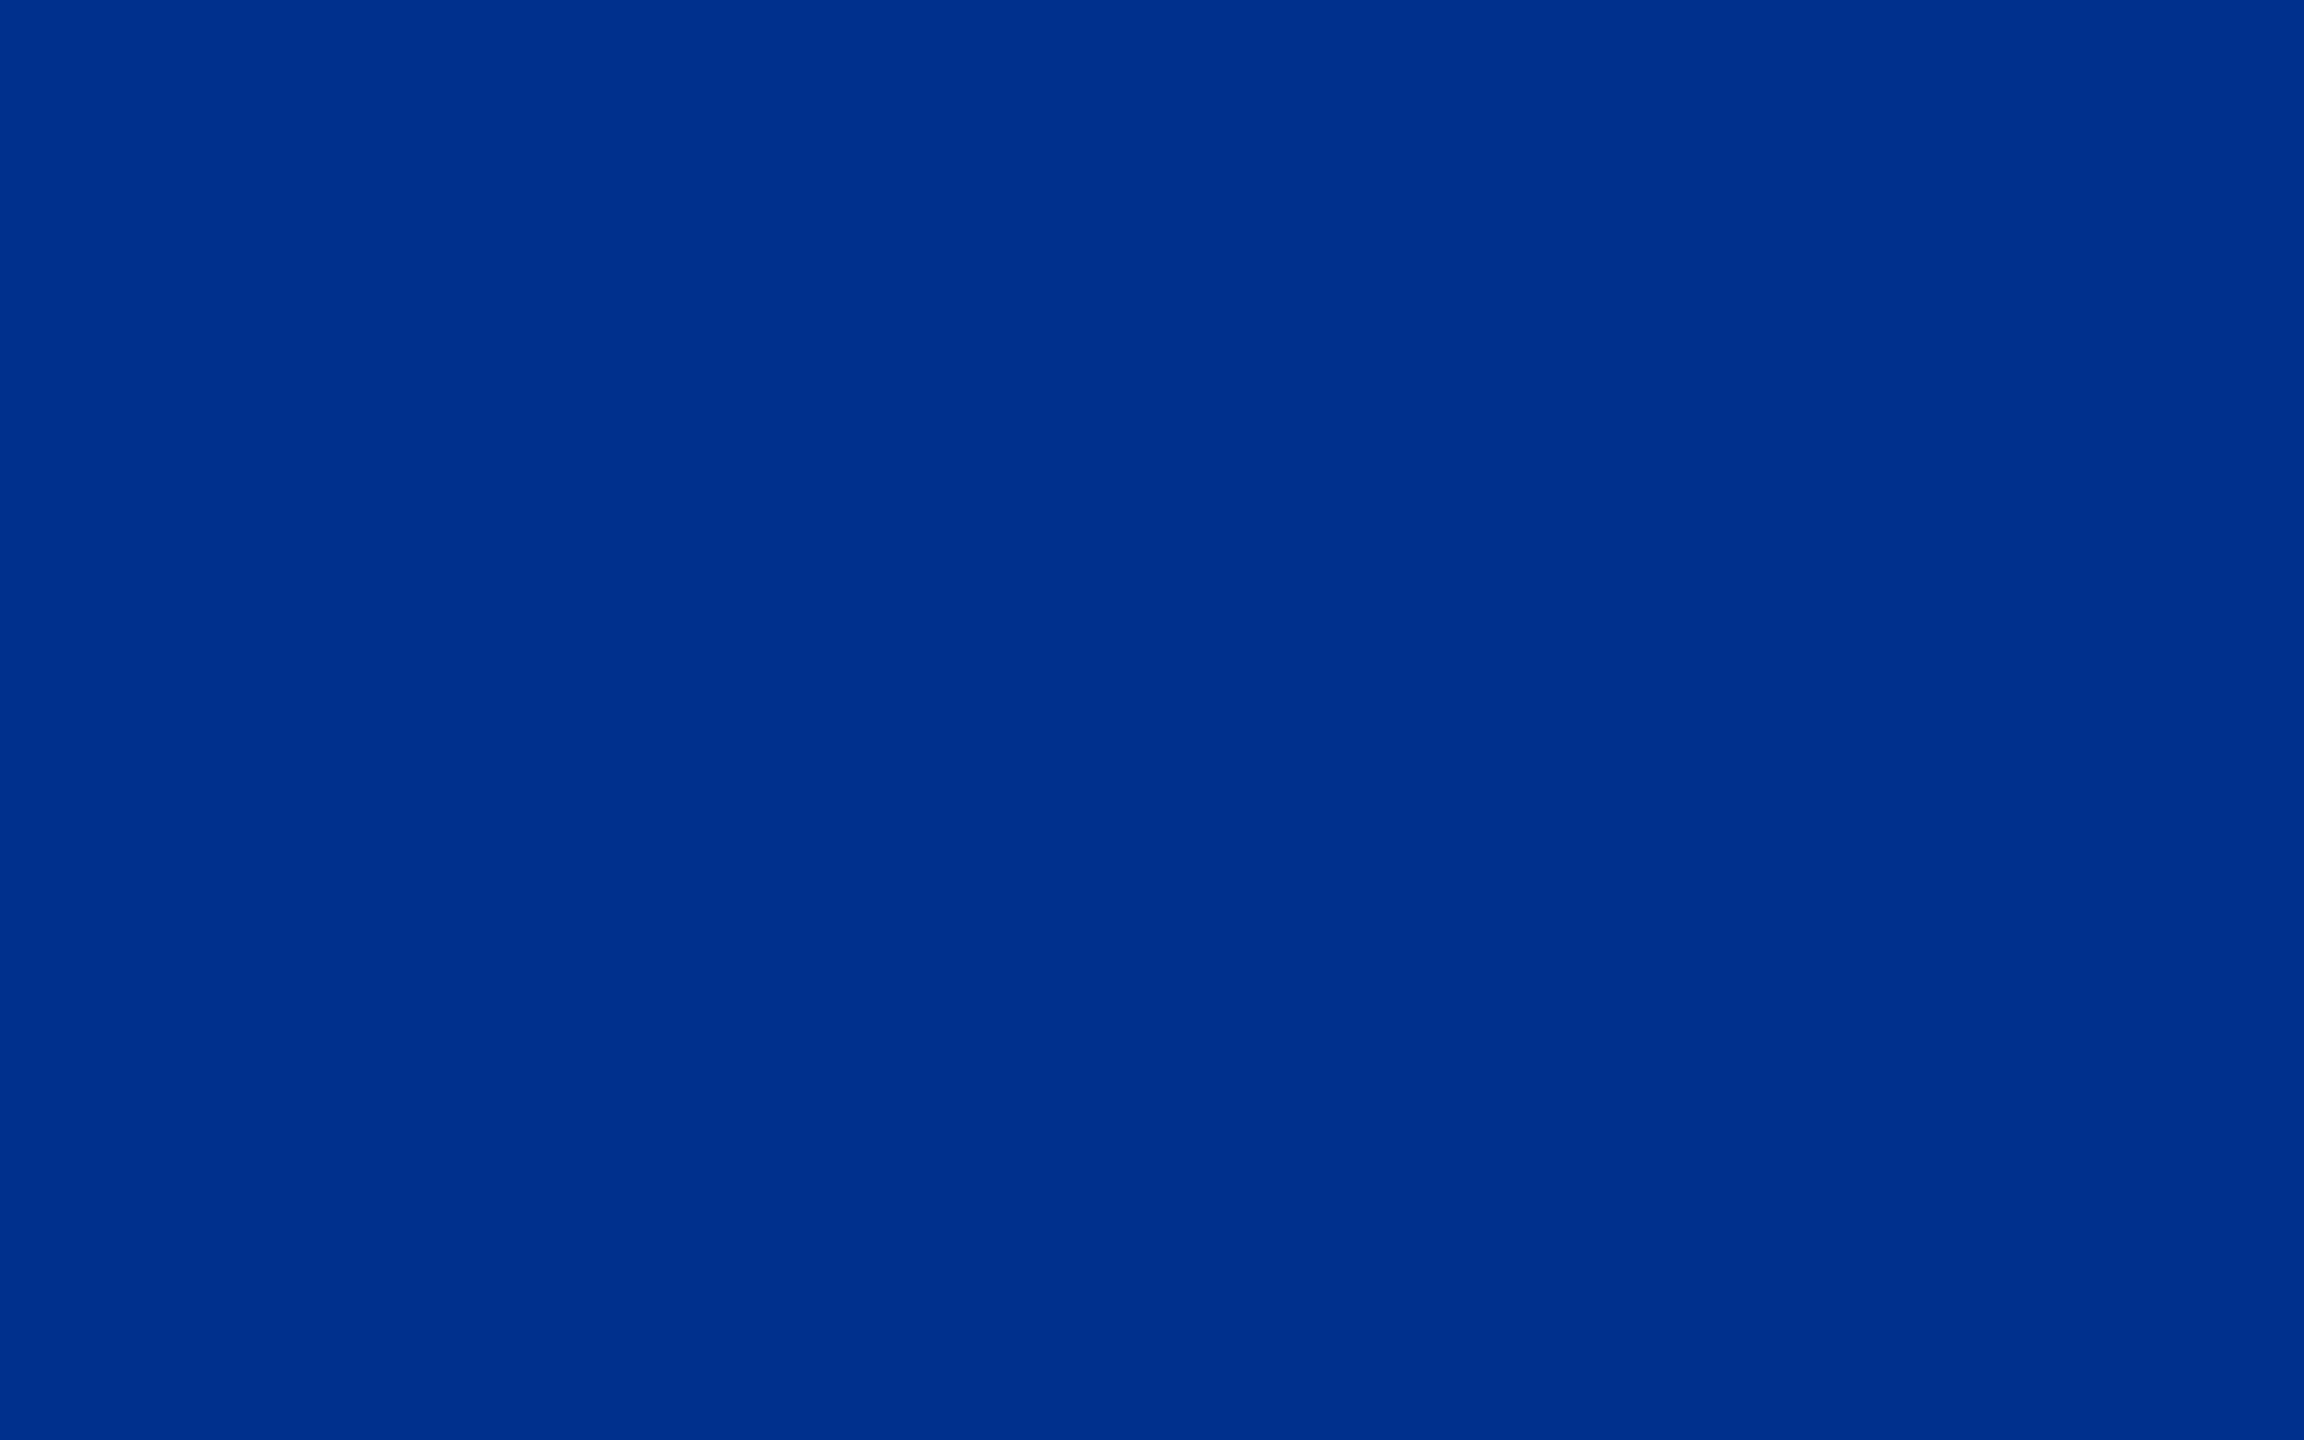 2304x1440 Air Force Dark Blue Solid Color Background